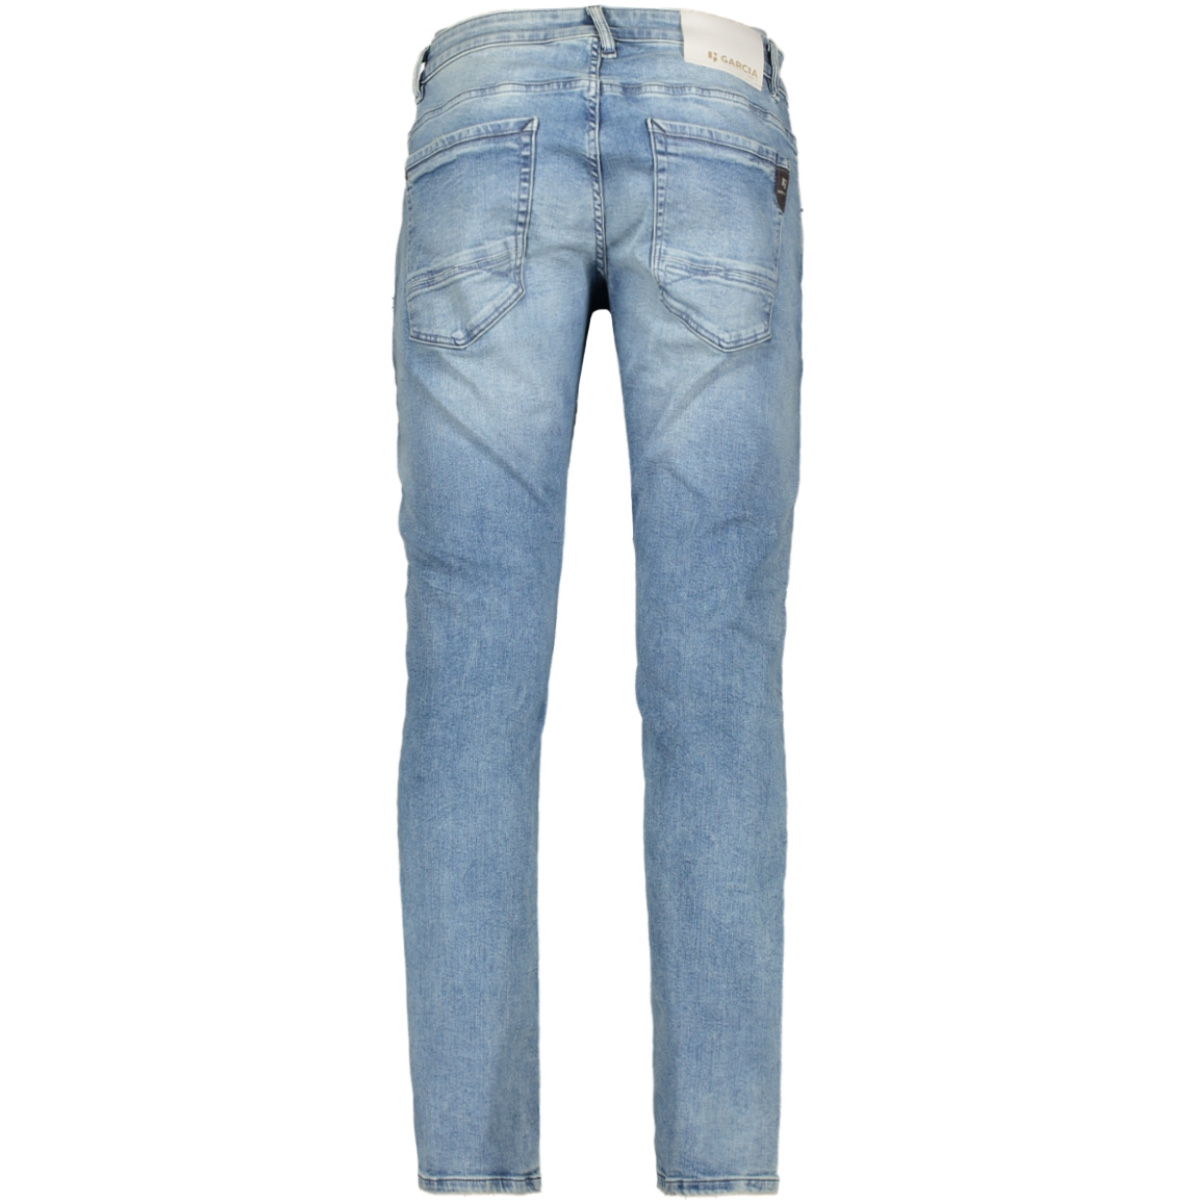 611 russo tapered garcia jeans 5540 vintage used